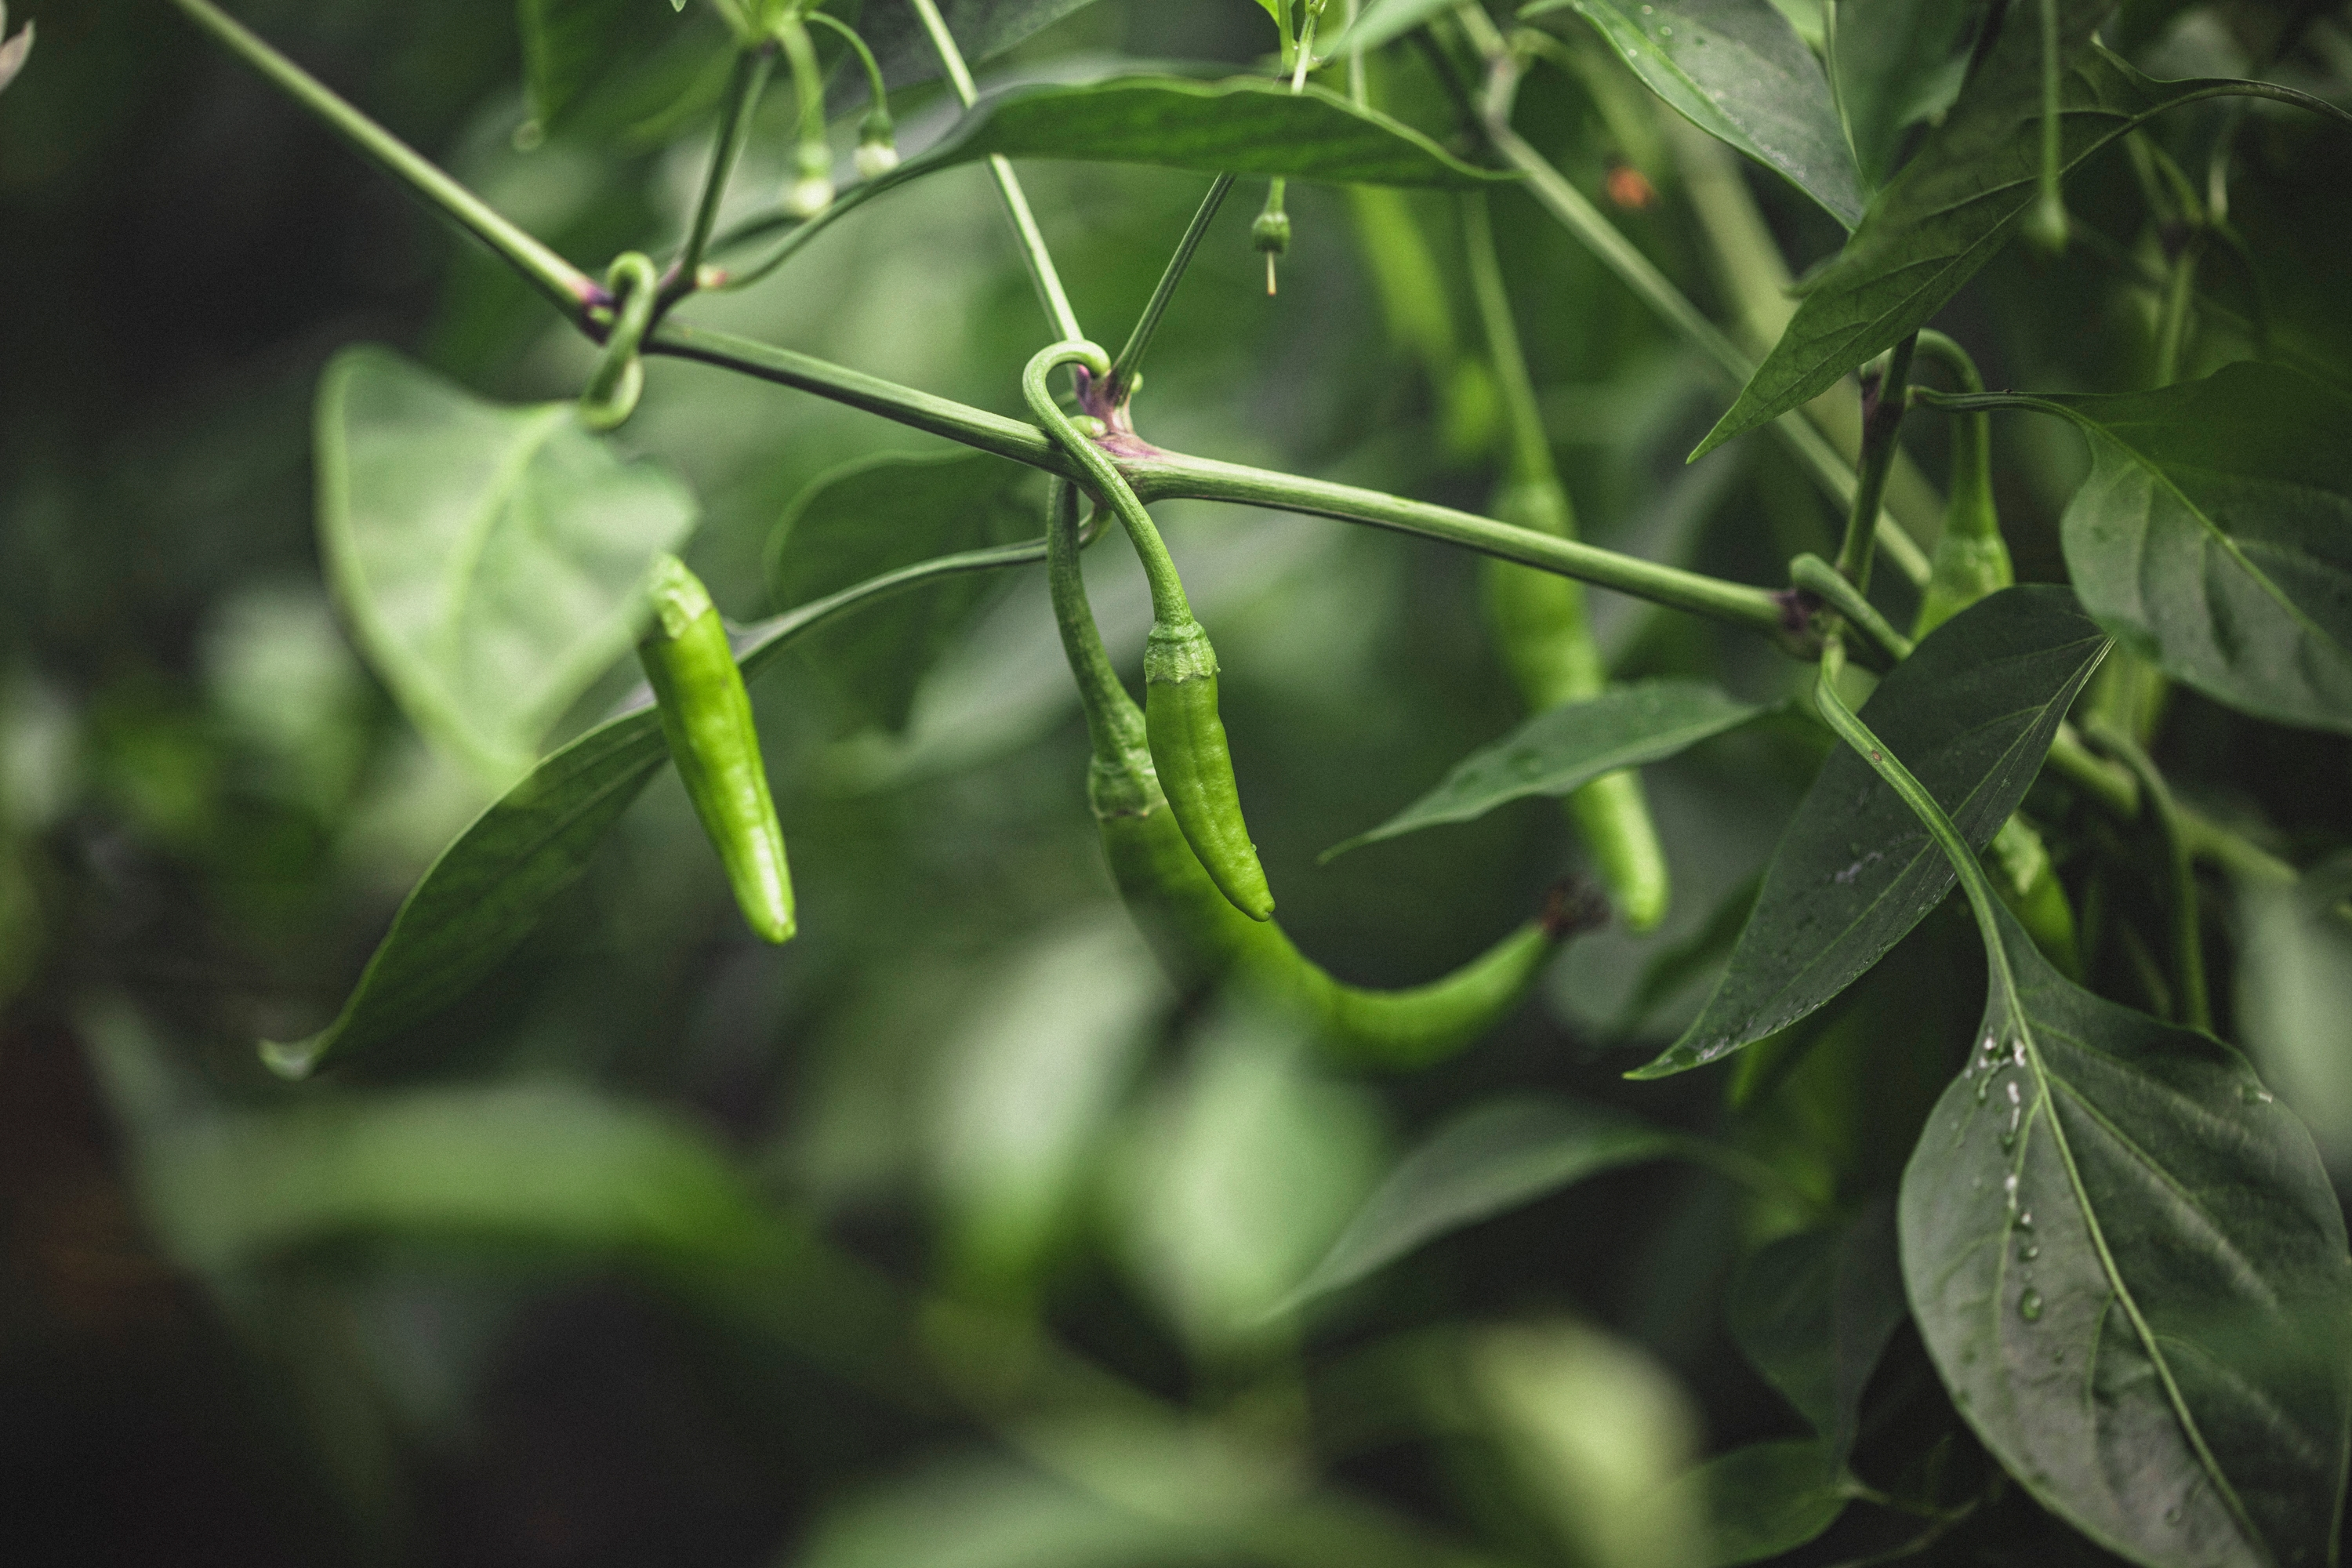 Chillies growing in polytunnels at Upper Norton Farm, Hampshire, UK